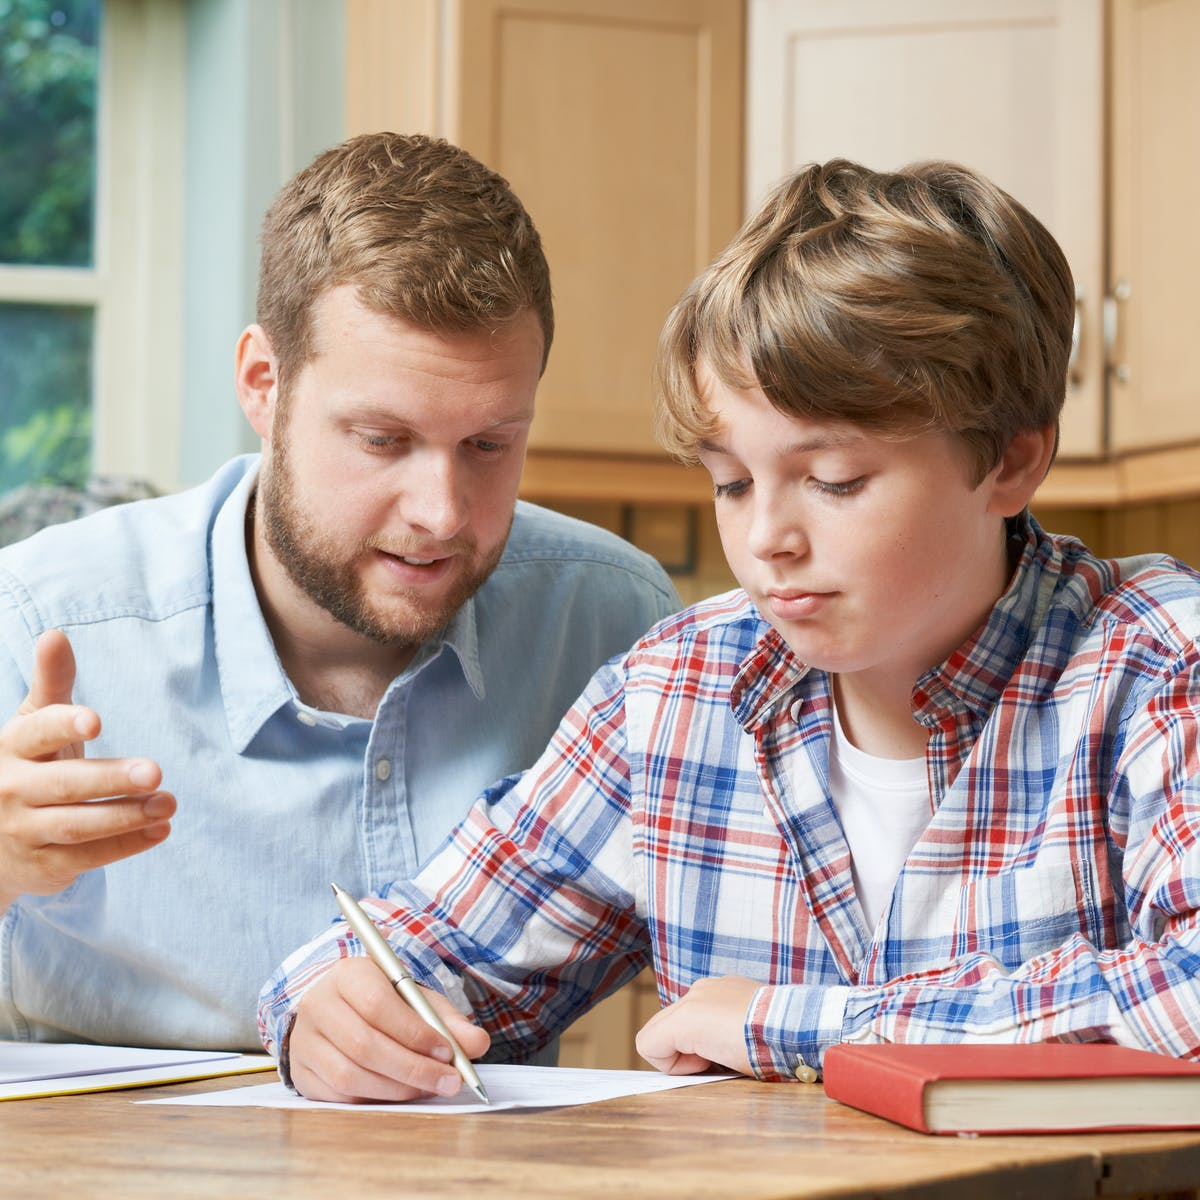 Trying to homeschool because of coronavirus? Here are 5 tips to help your  child learn